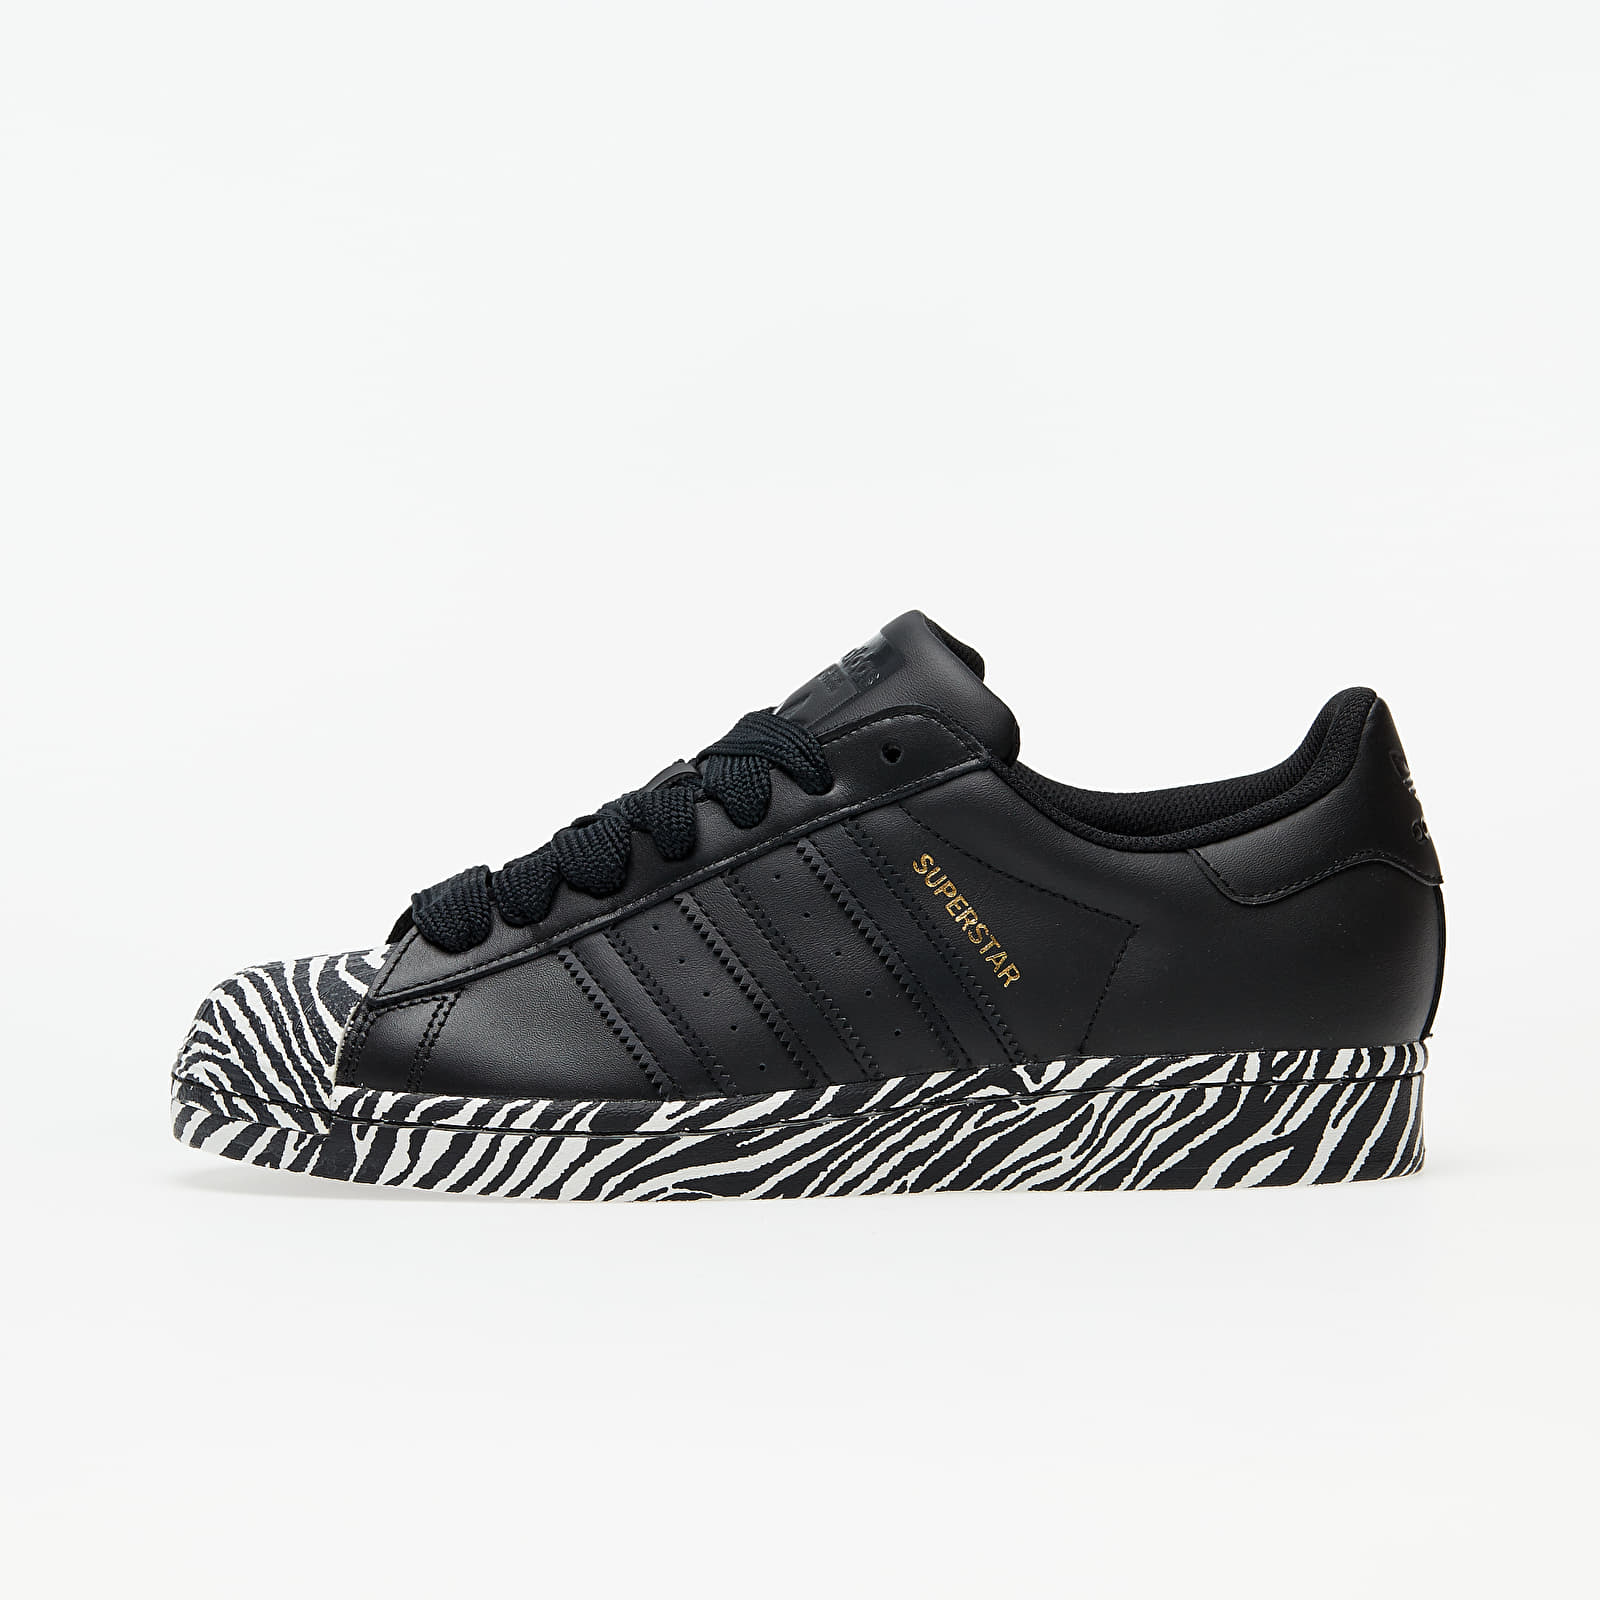 adidas Superstar W Core Black/ Gold Metalic/ Ftw White EUR 41 1/3